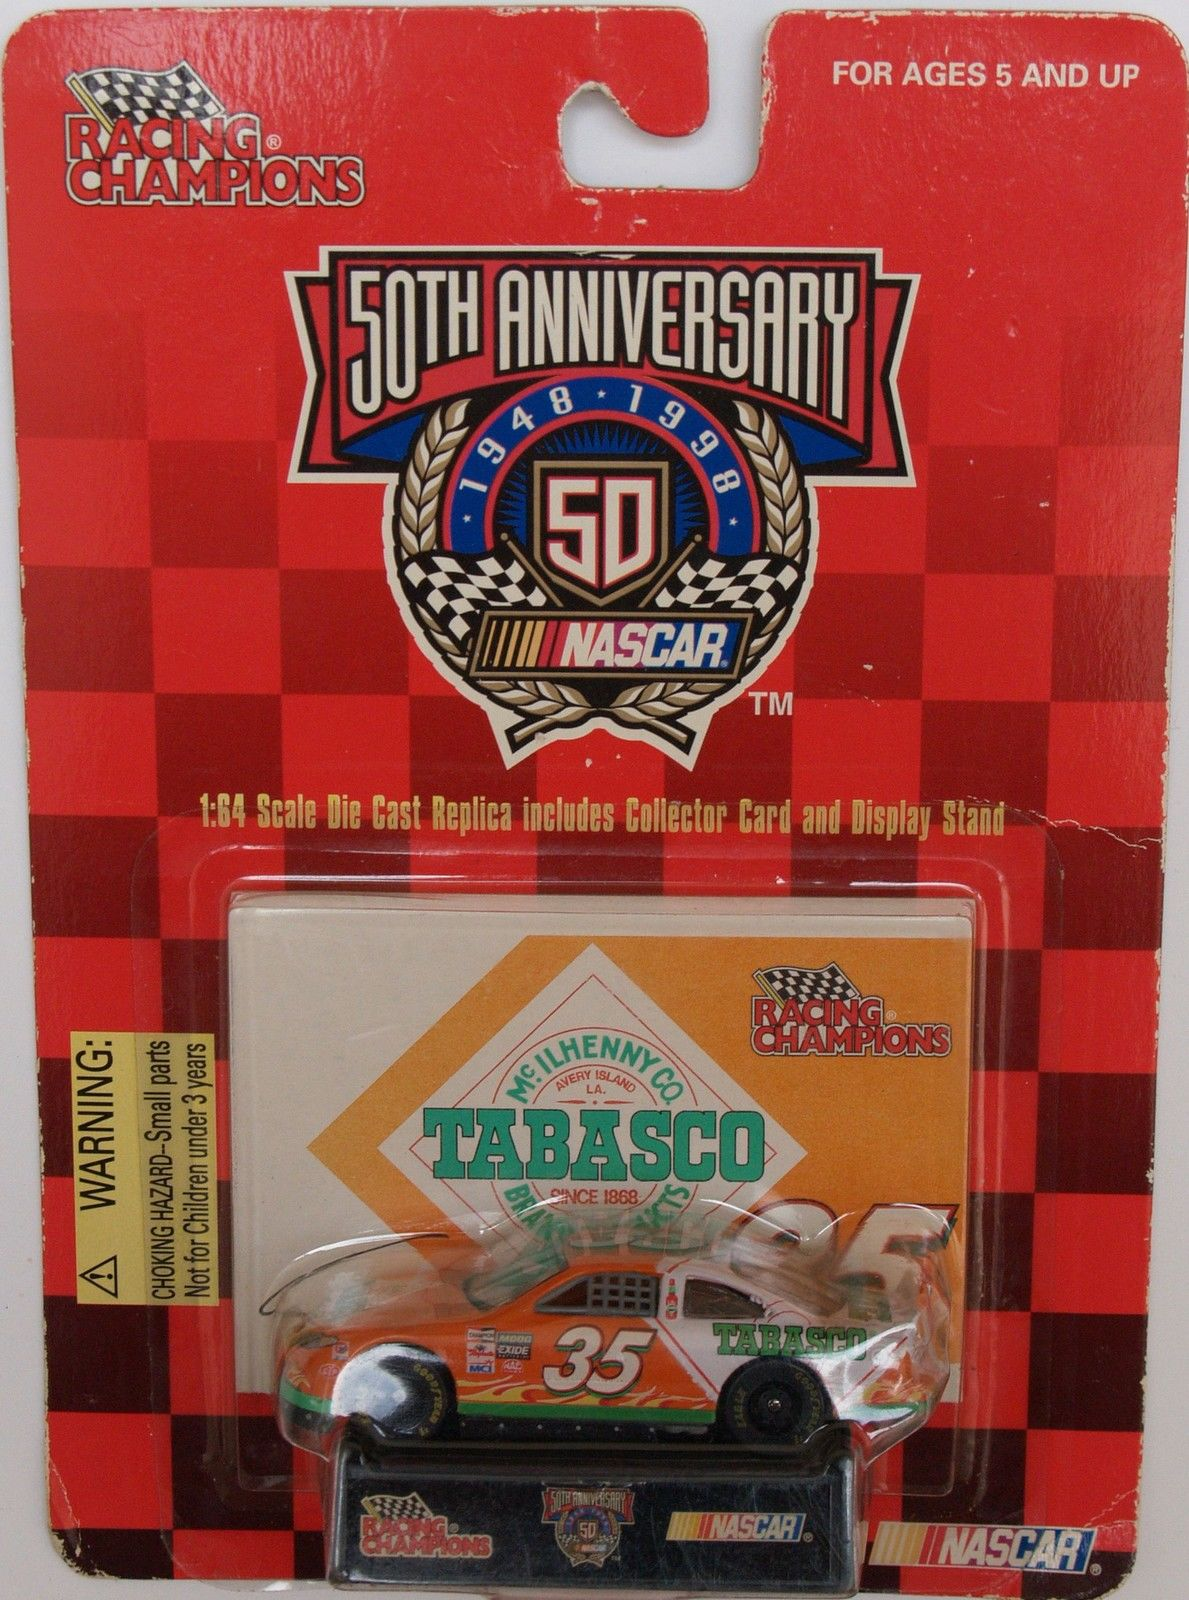 1998 RACING CHAMPIONS - NASCAR 50TH ANNIVERSARY - #35 TABASCO